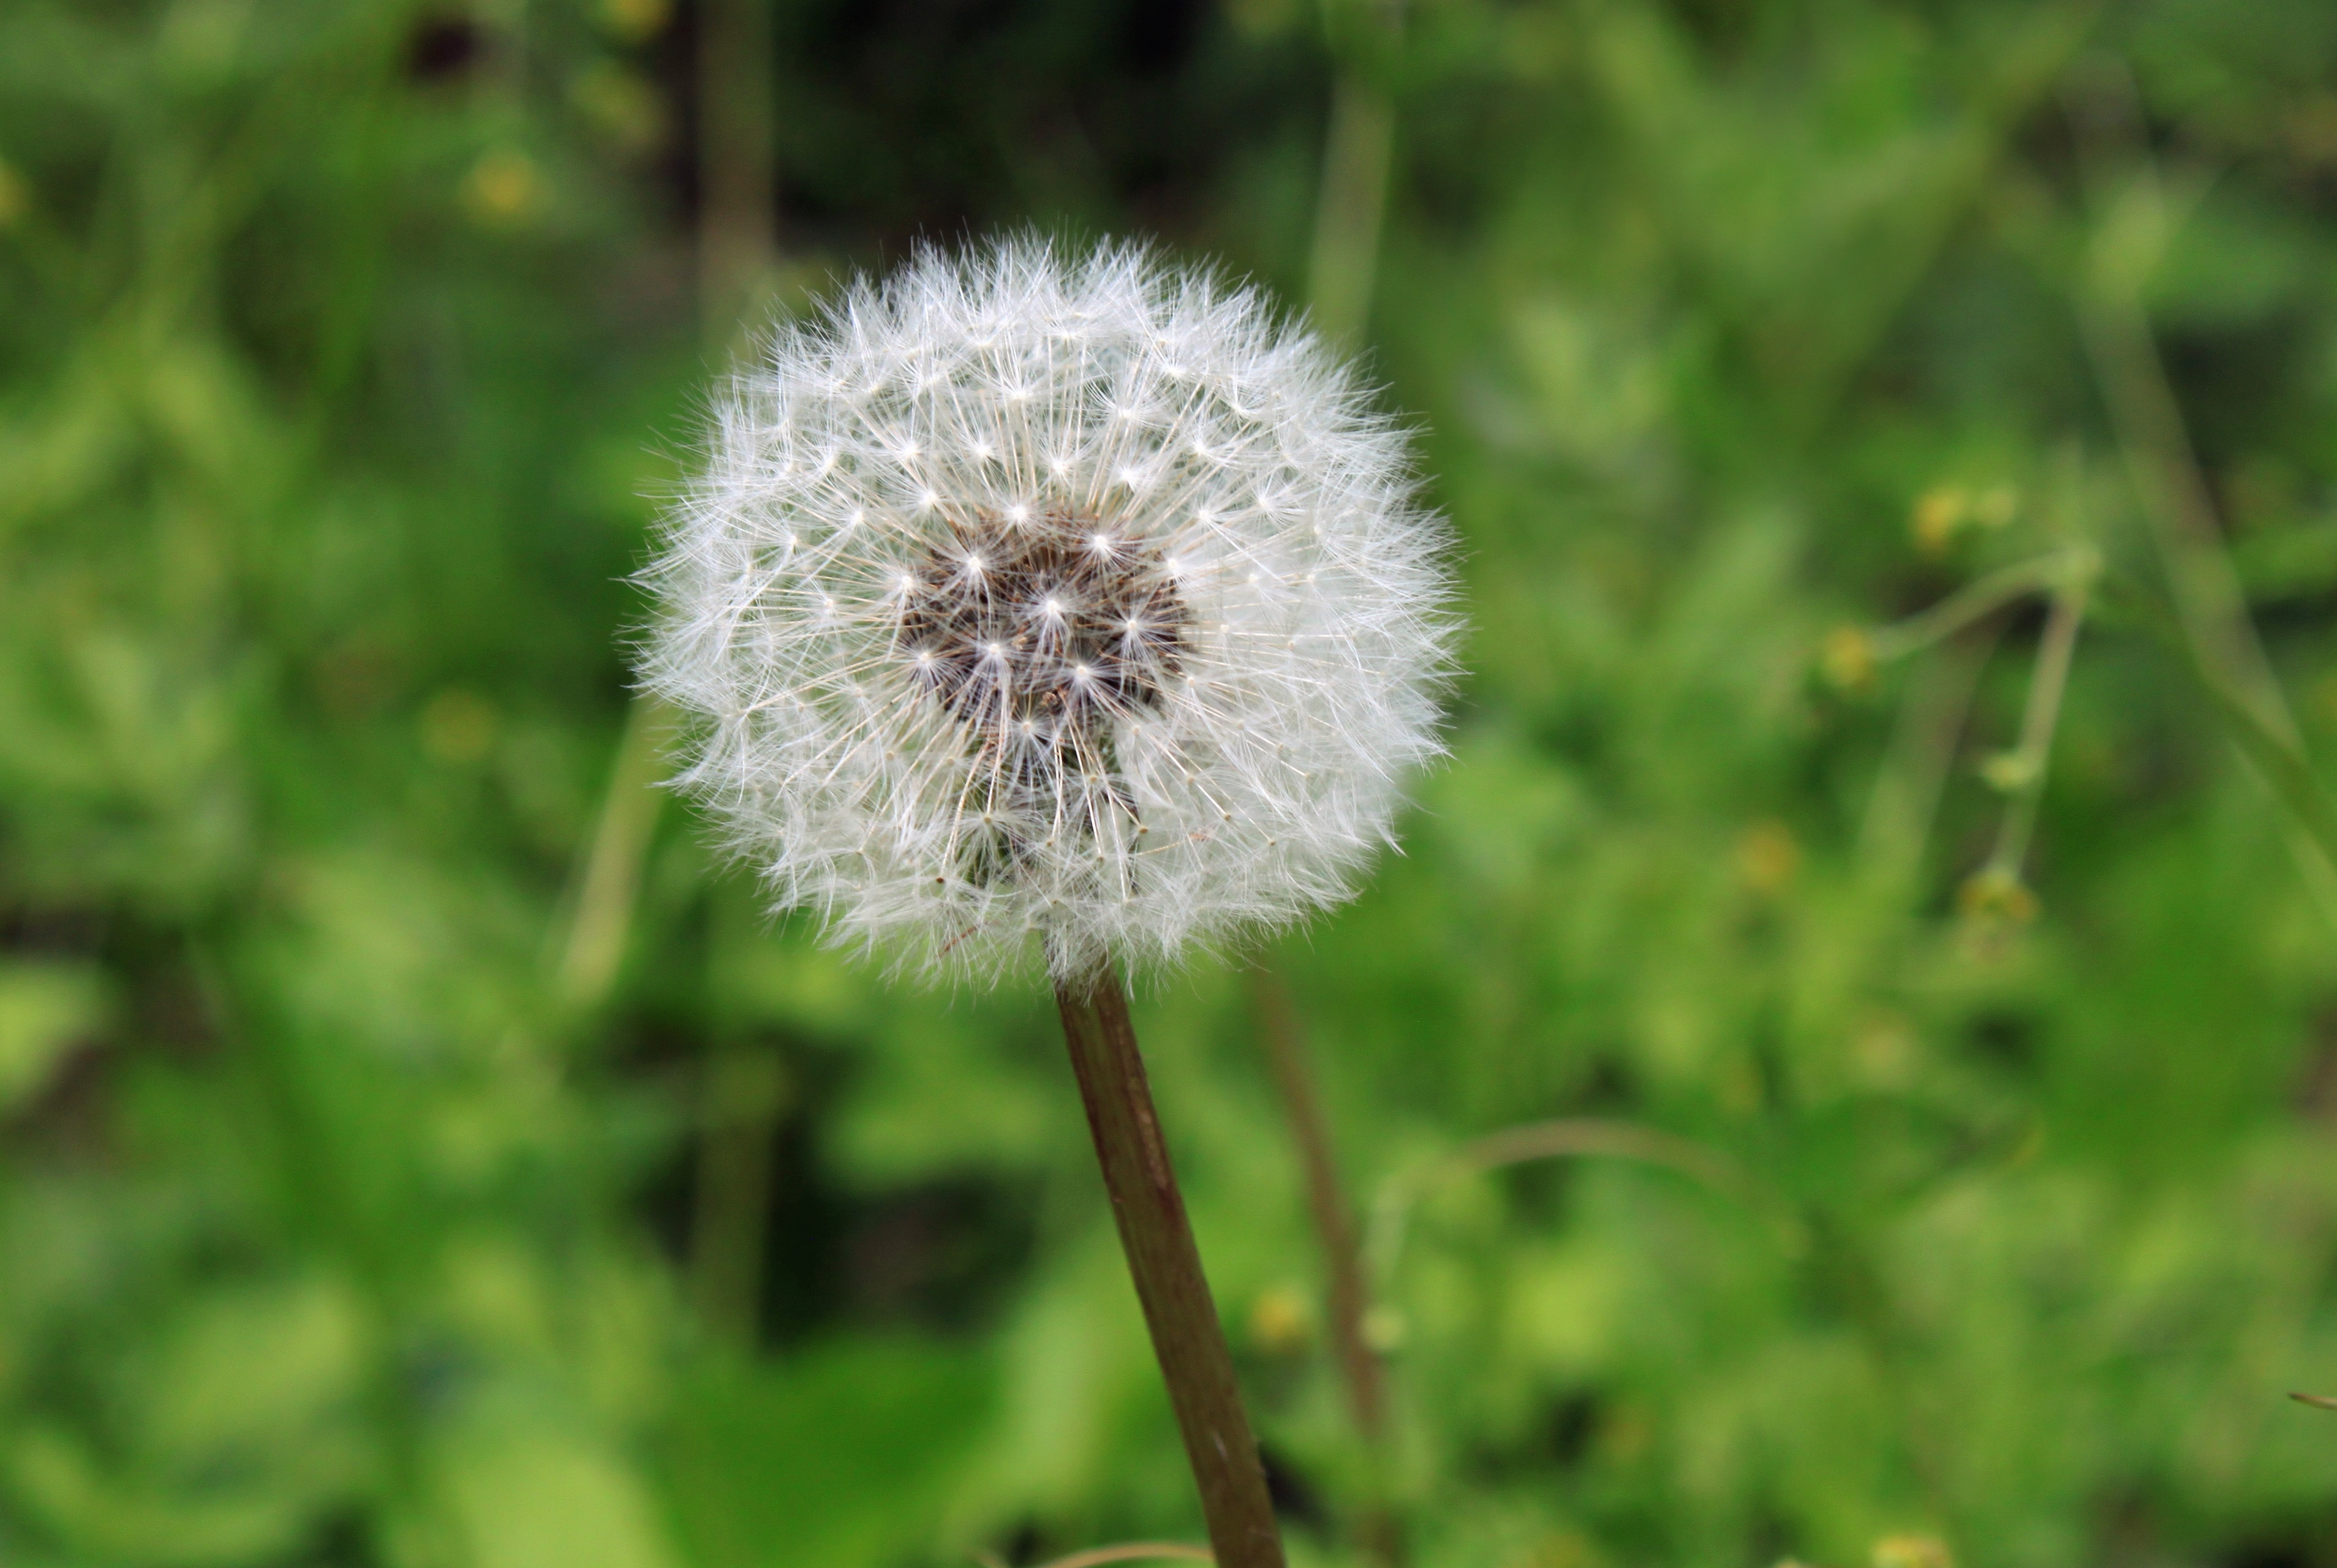 Close Up Photography Of White Dandelion Seed 183 Free Stock